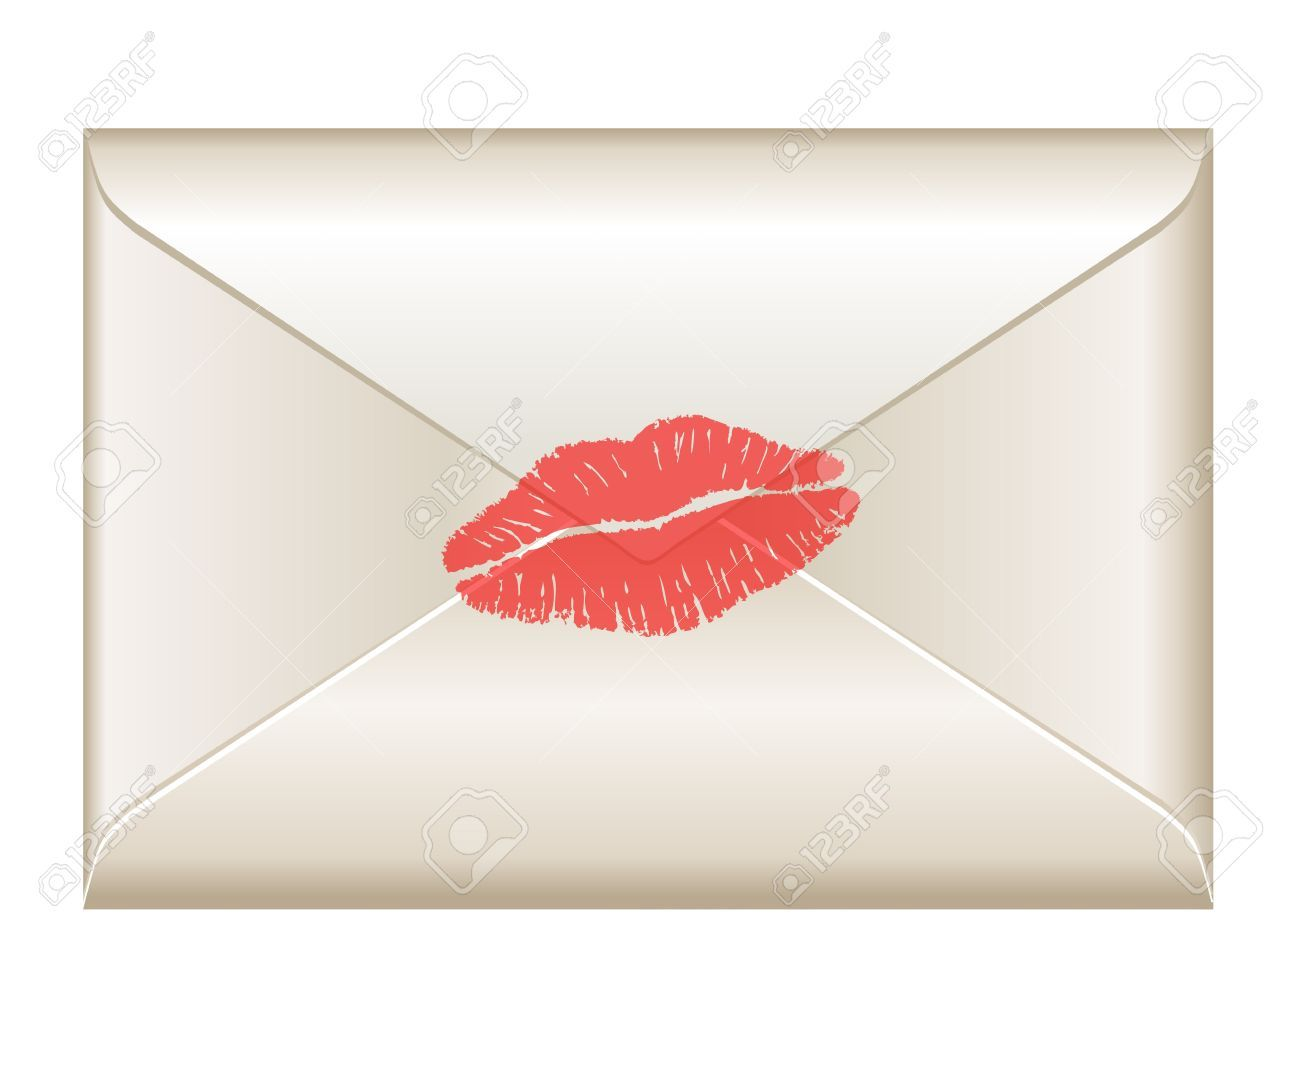 17301844-love-letter-with-lipstick-kiss.jpg